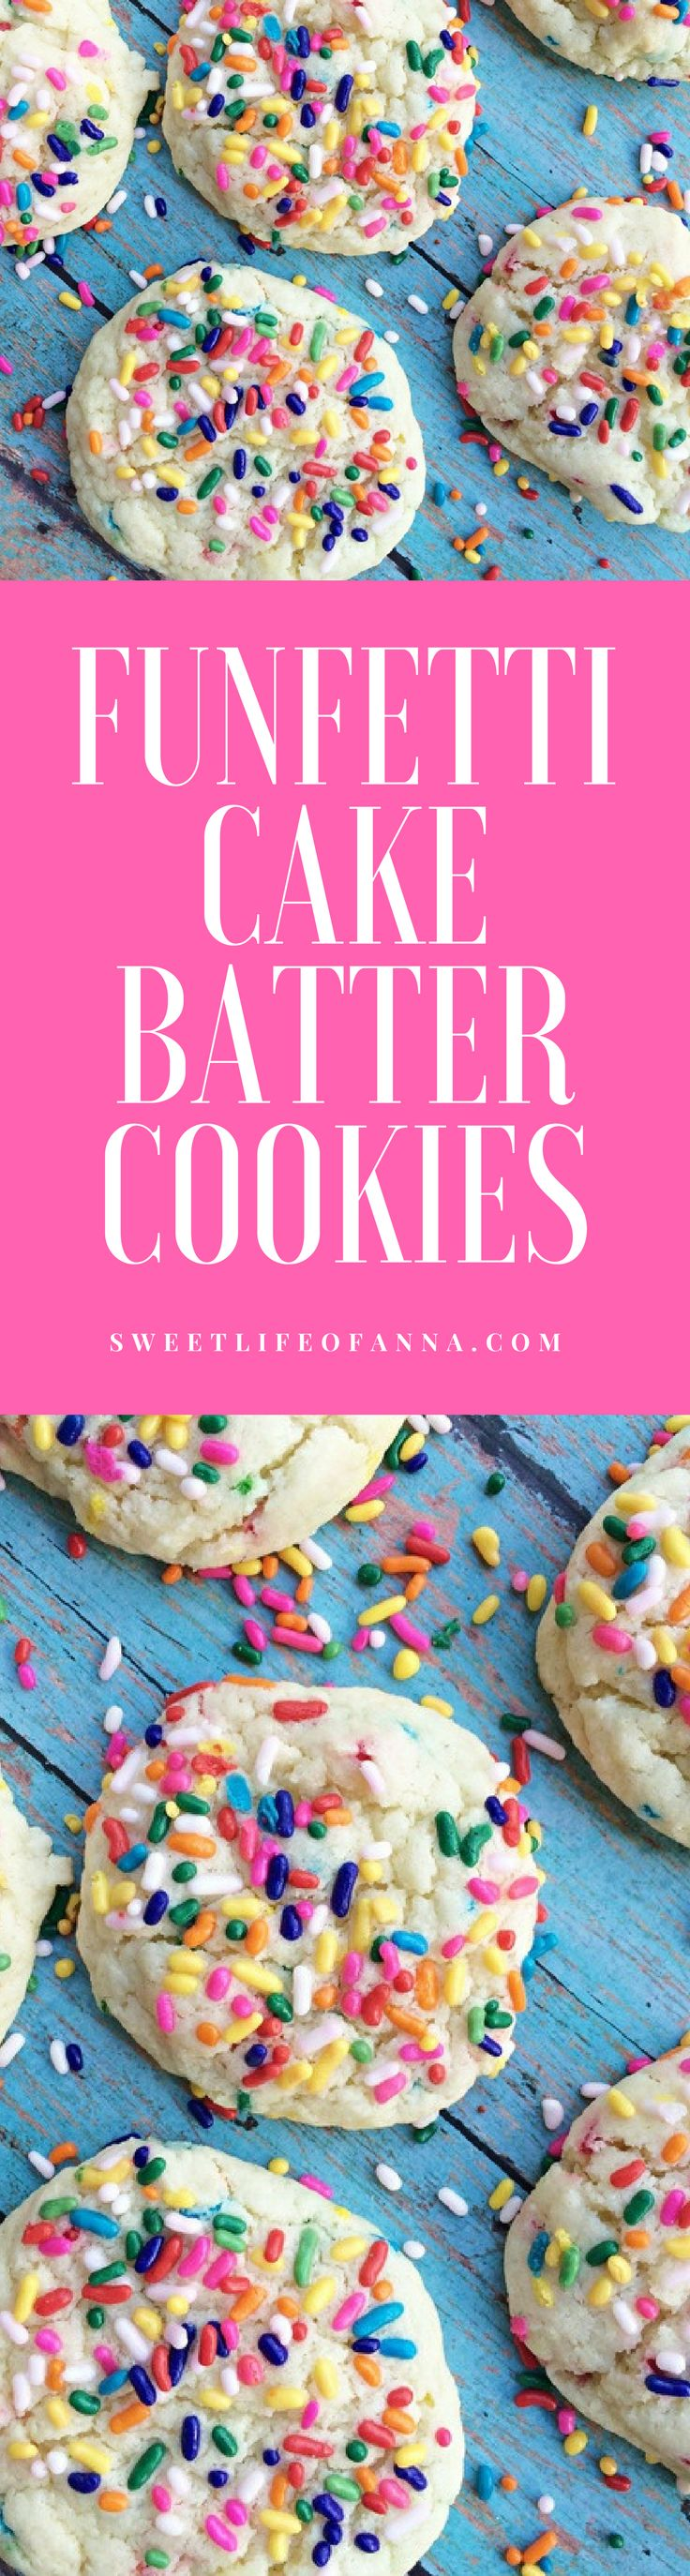 Funafuti Cake Batter Cookies using a Cake Box Mix.